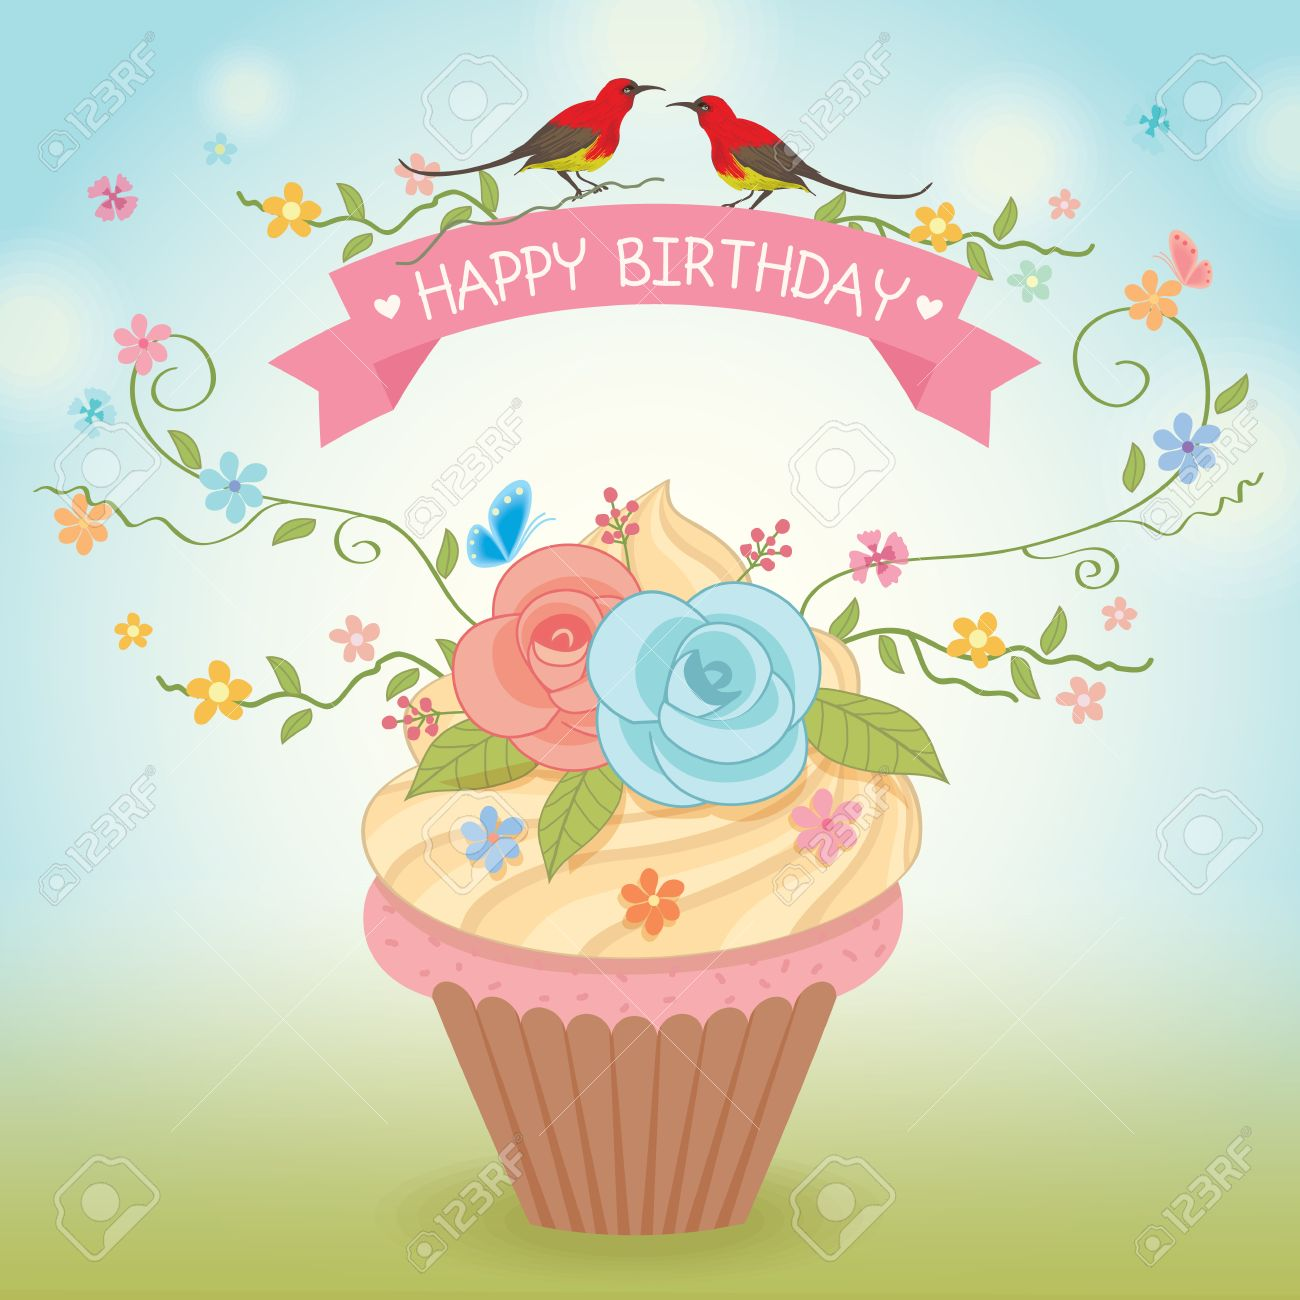 Sweet Cupcake Decoration With Flowers And Couple Birds For Happy Birthday Vector CardNature Background